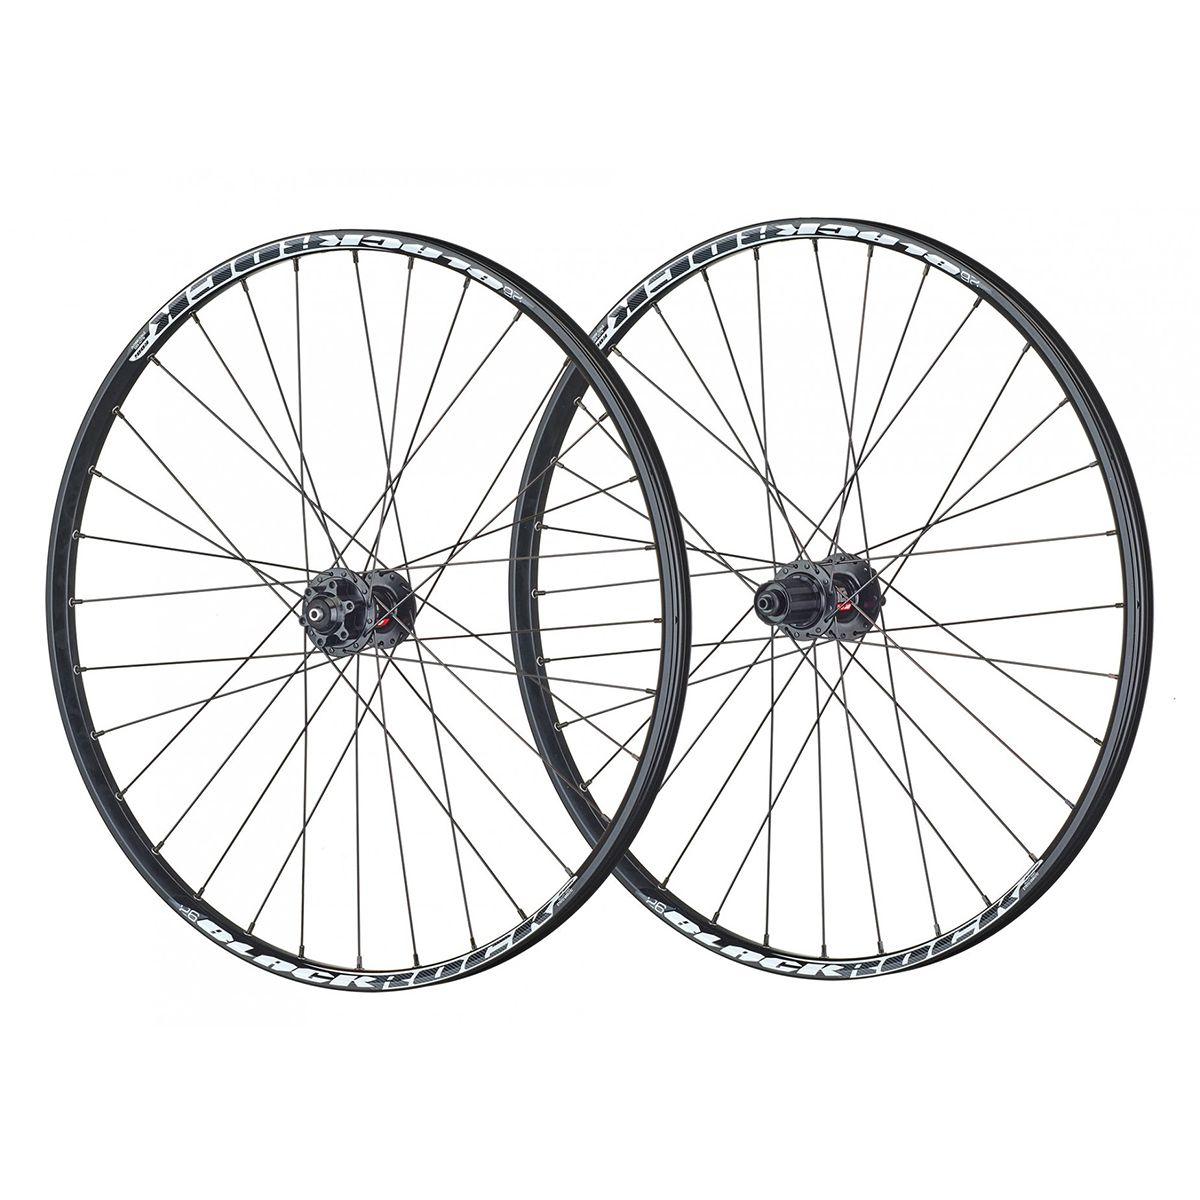 MTB wheelset Rodi Blackrock Disc / DT Swiss 370 Disc